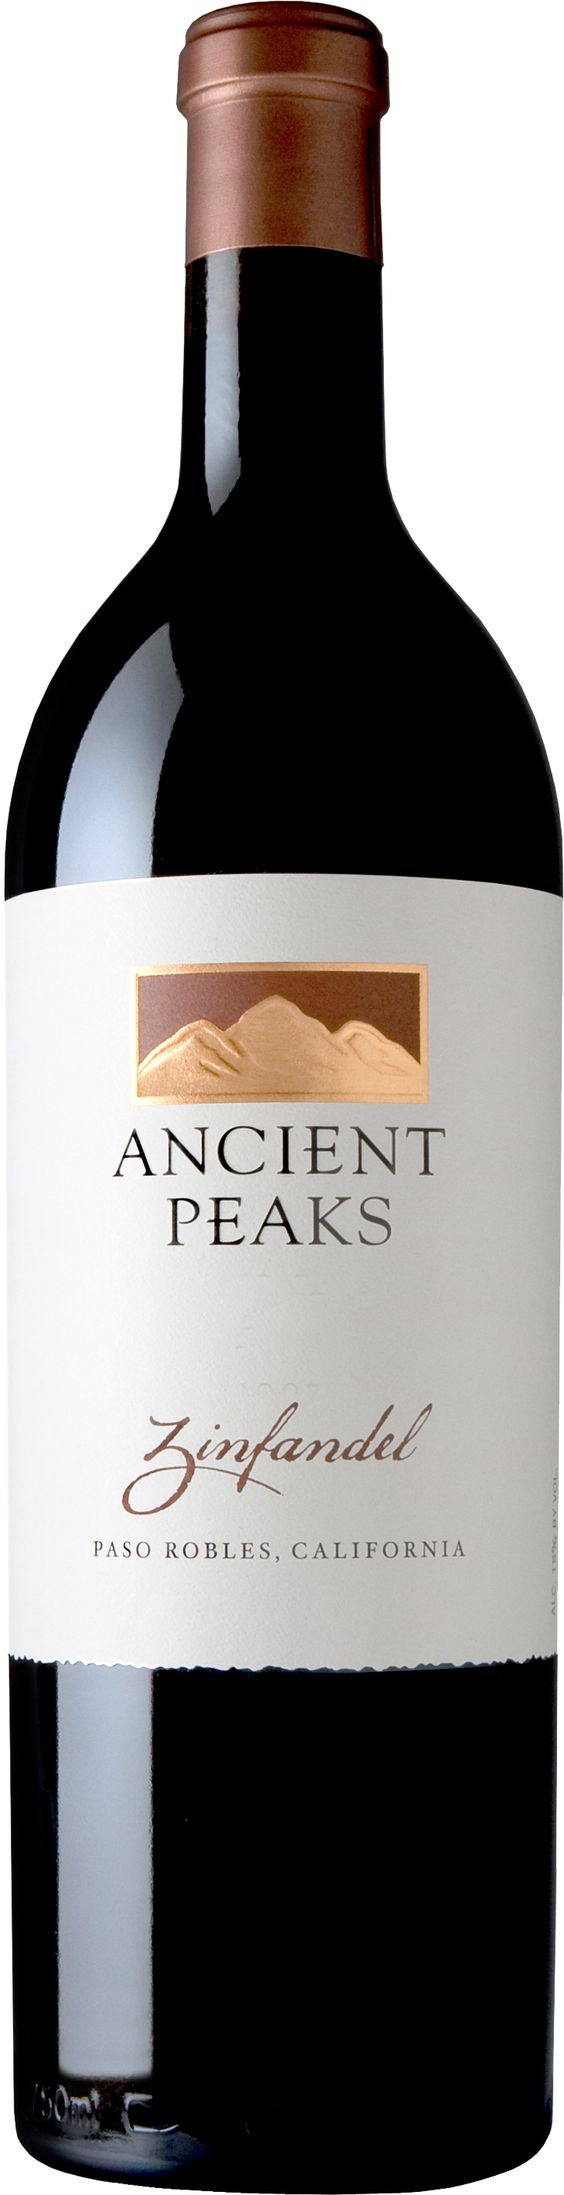 Ancient Peaks 2009 Zinfandel: Ancient Peaks is a newer winery on the Central Coast started by the group of families that own the 1,400 acre Santa Margarita Ranch. There is a 800 acre vineyard planted on the ranch that was put there in the 80's by Mondavi. Mike Sinor, a rock star and extremely talented winemaker has taken on the project and as usual first vintage out the gates scored 93 points from Robert Parker and was featured in Sunset.